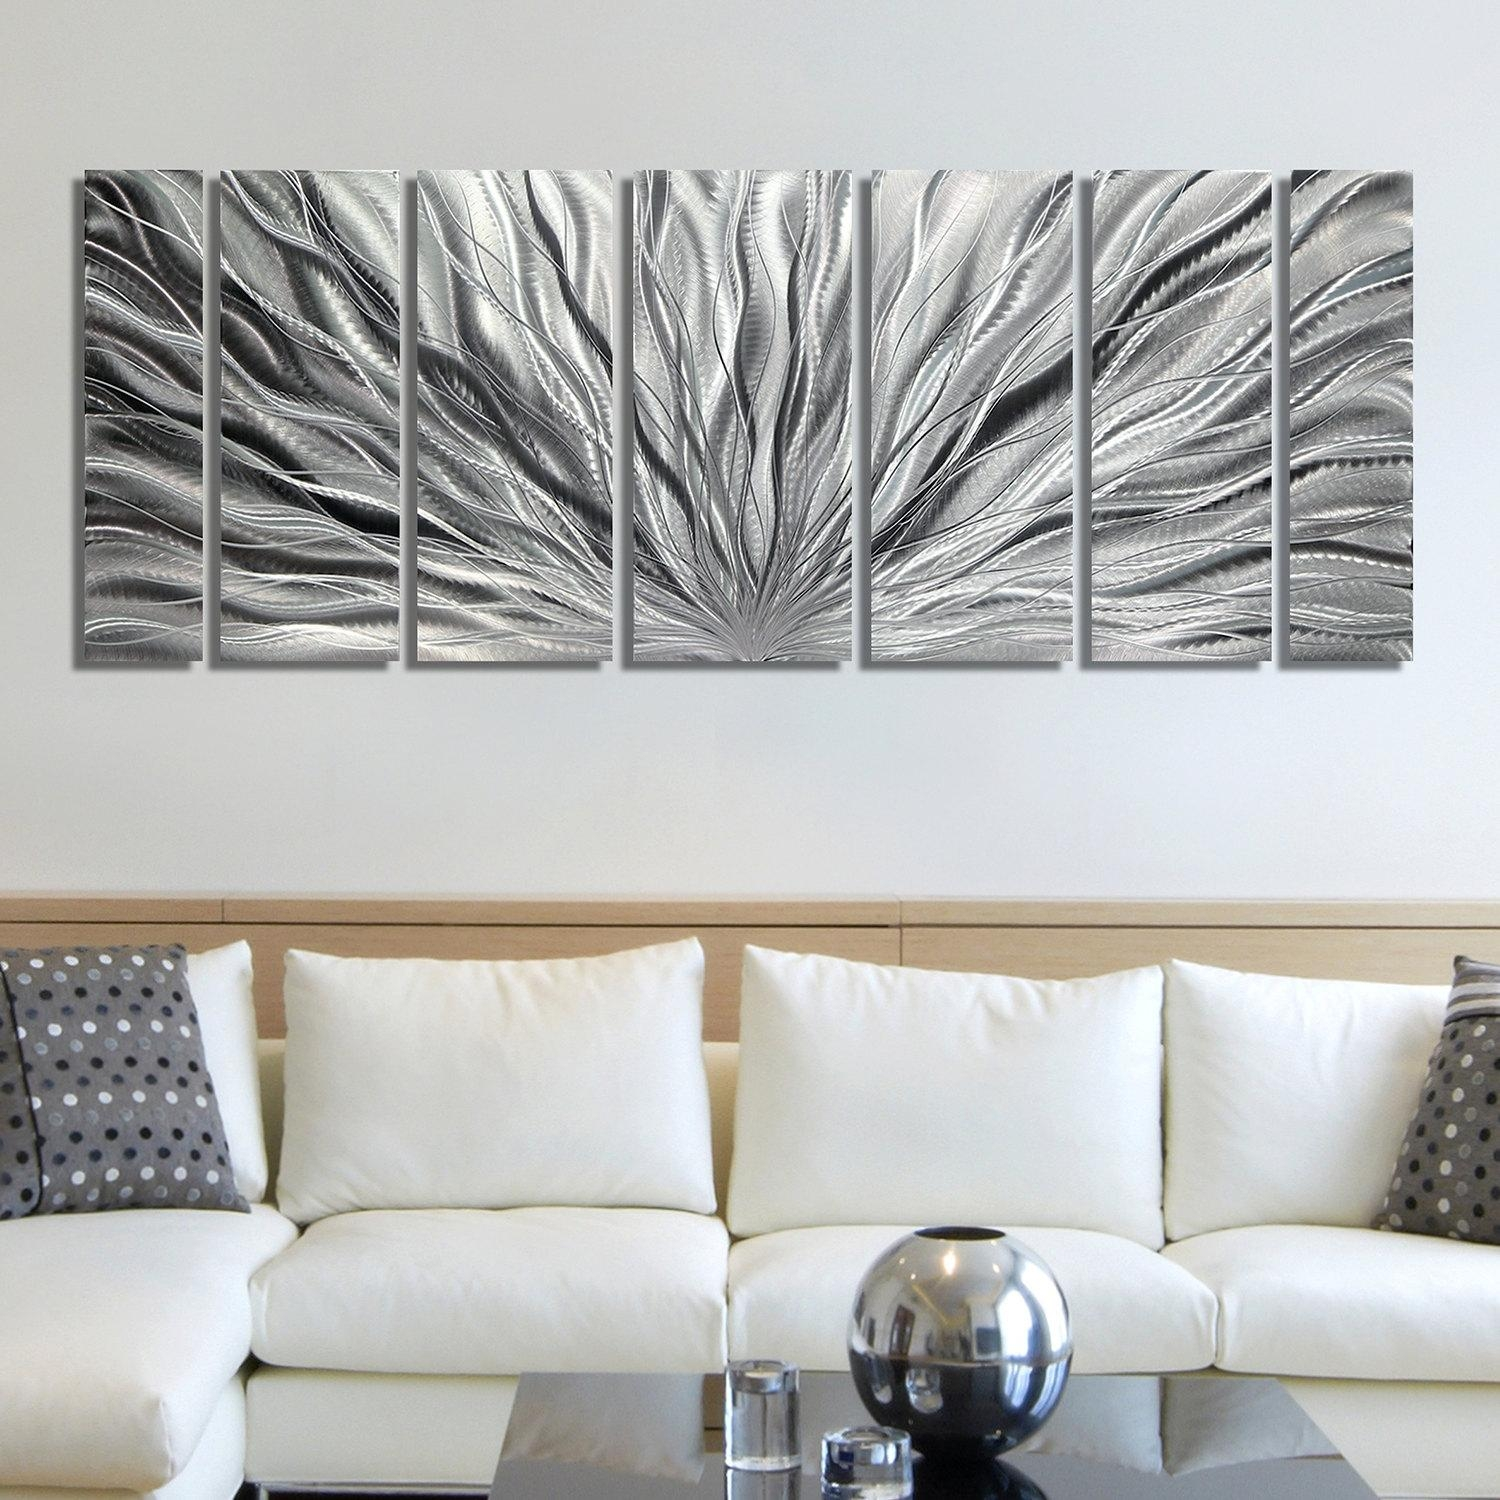 Sale Large Multi Panel Metal Wall Art In All Silver With Regard To Modern Wall Art For Sale (Image 9 of 20)